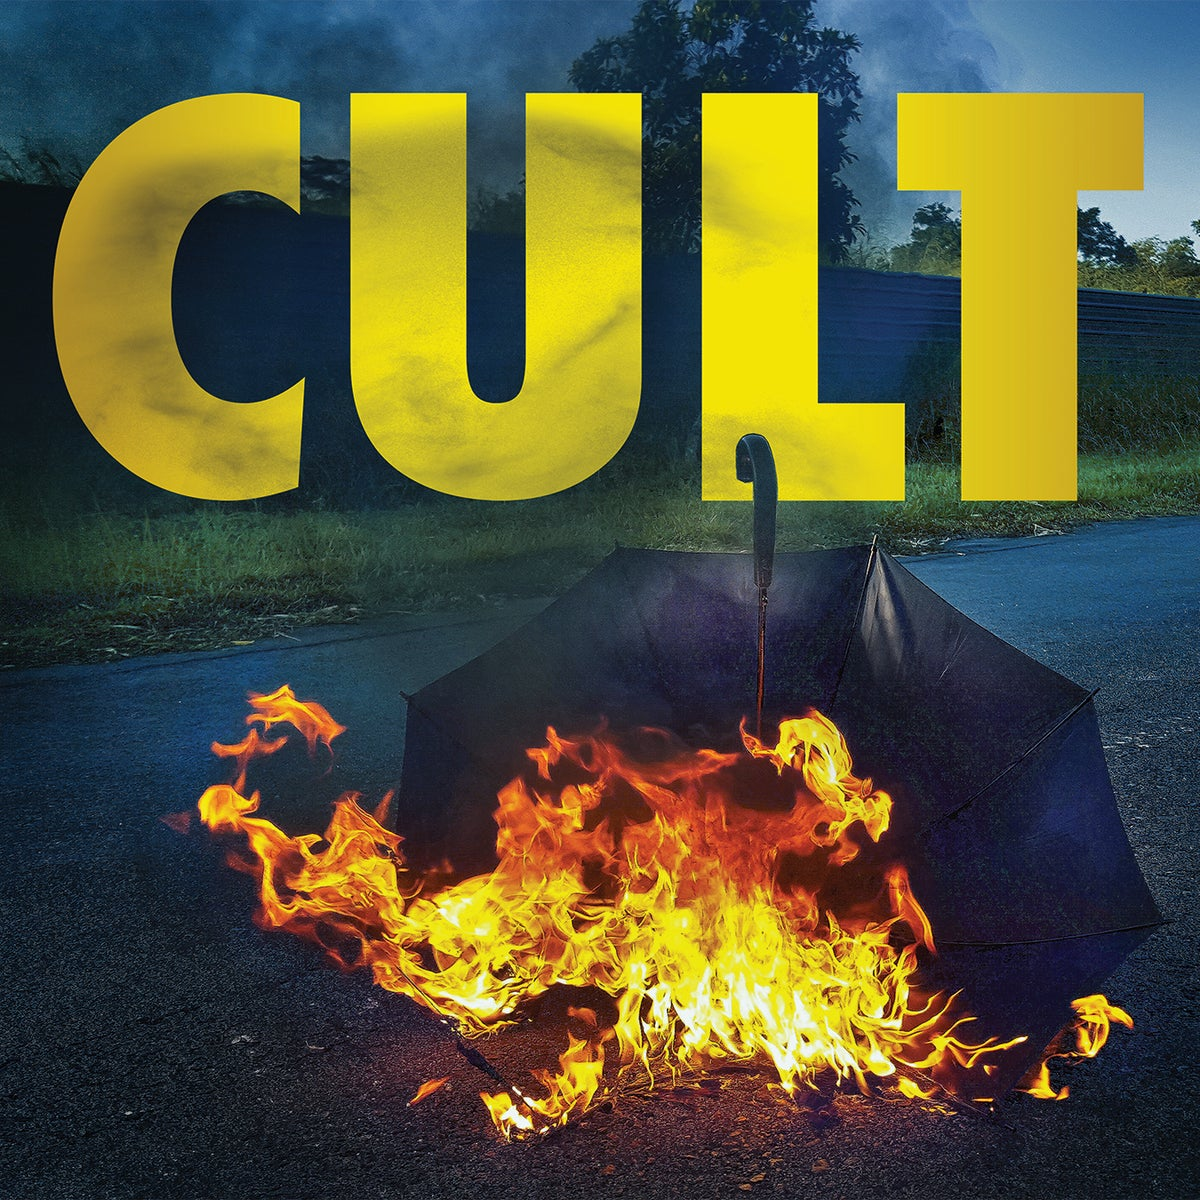 Image of THE CAULFIELD CULT cult